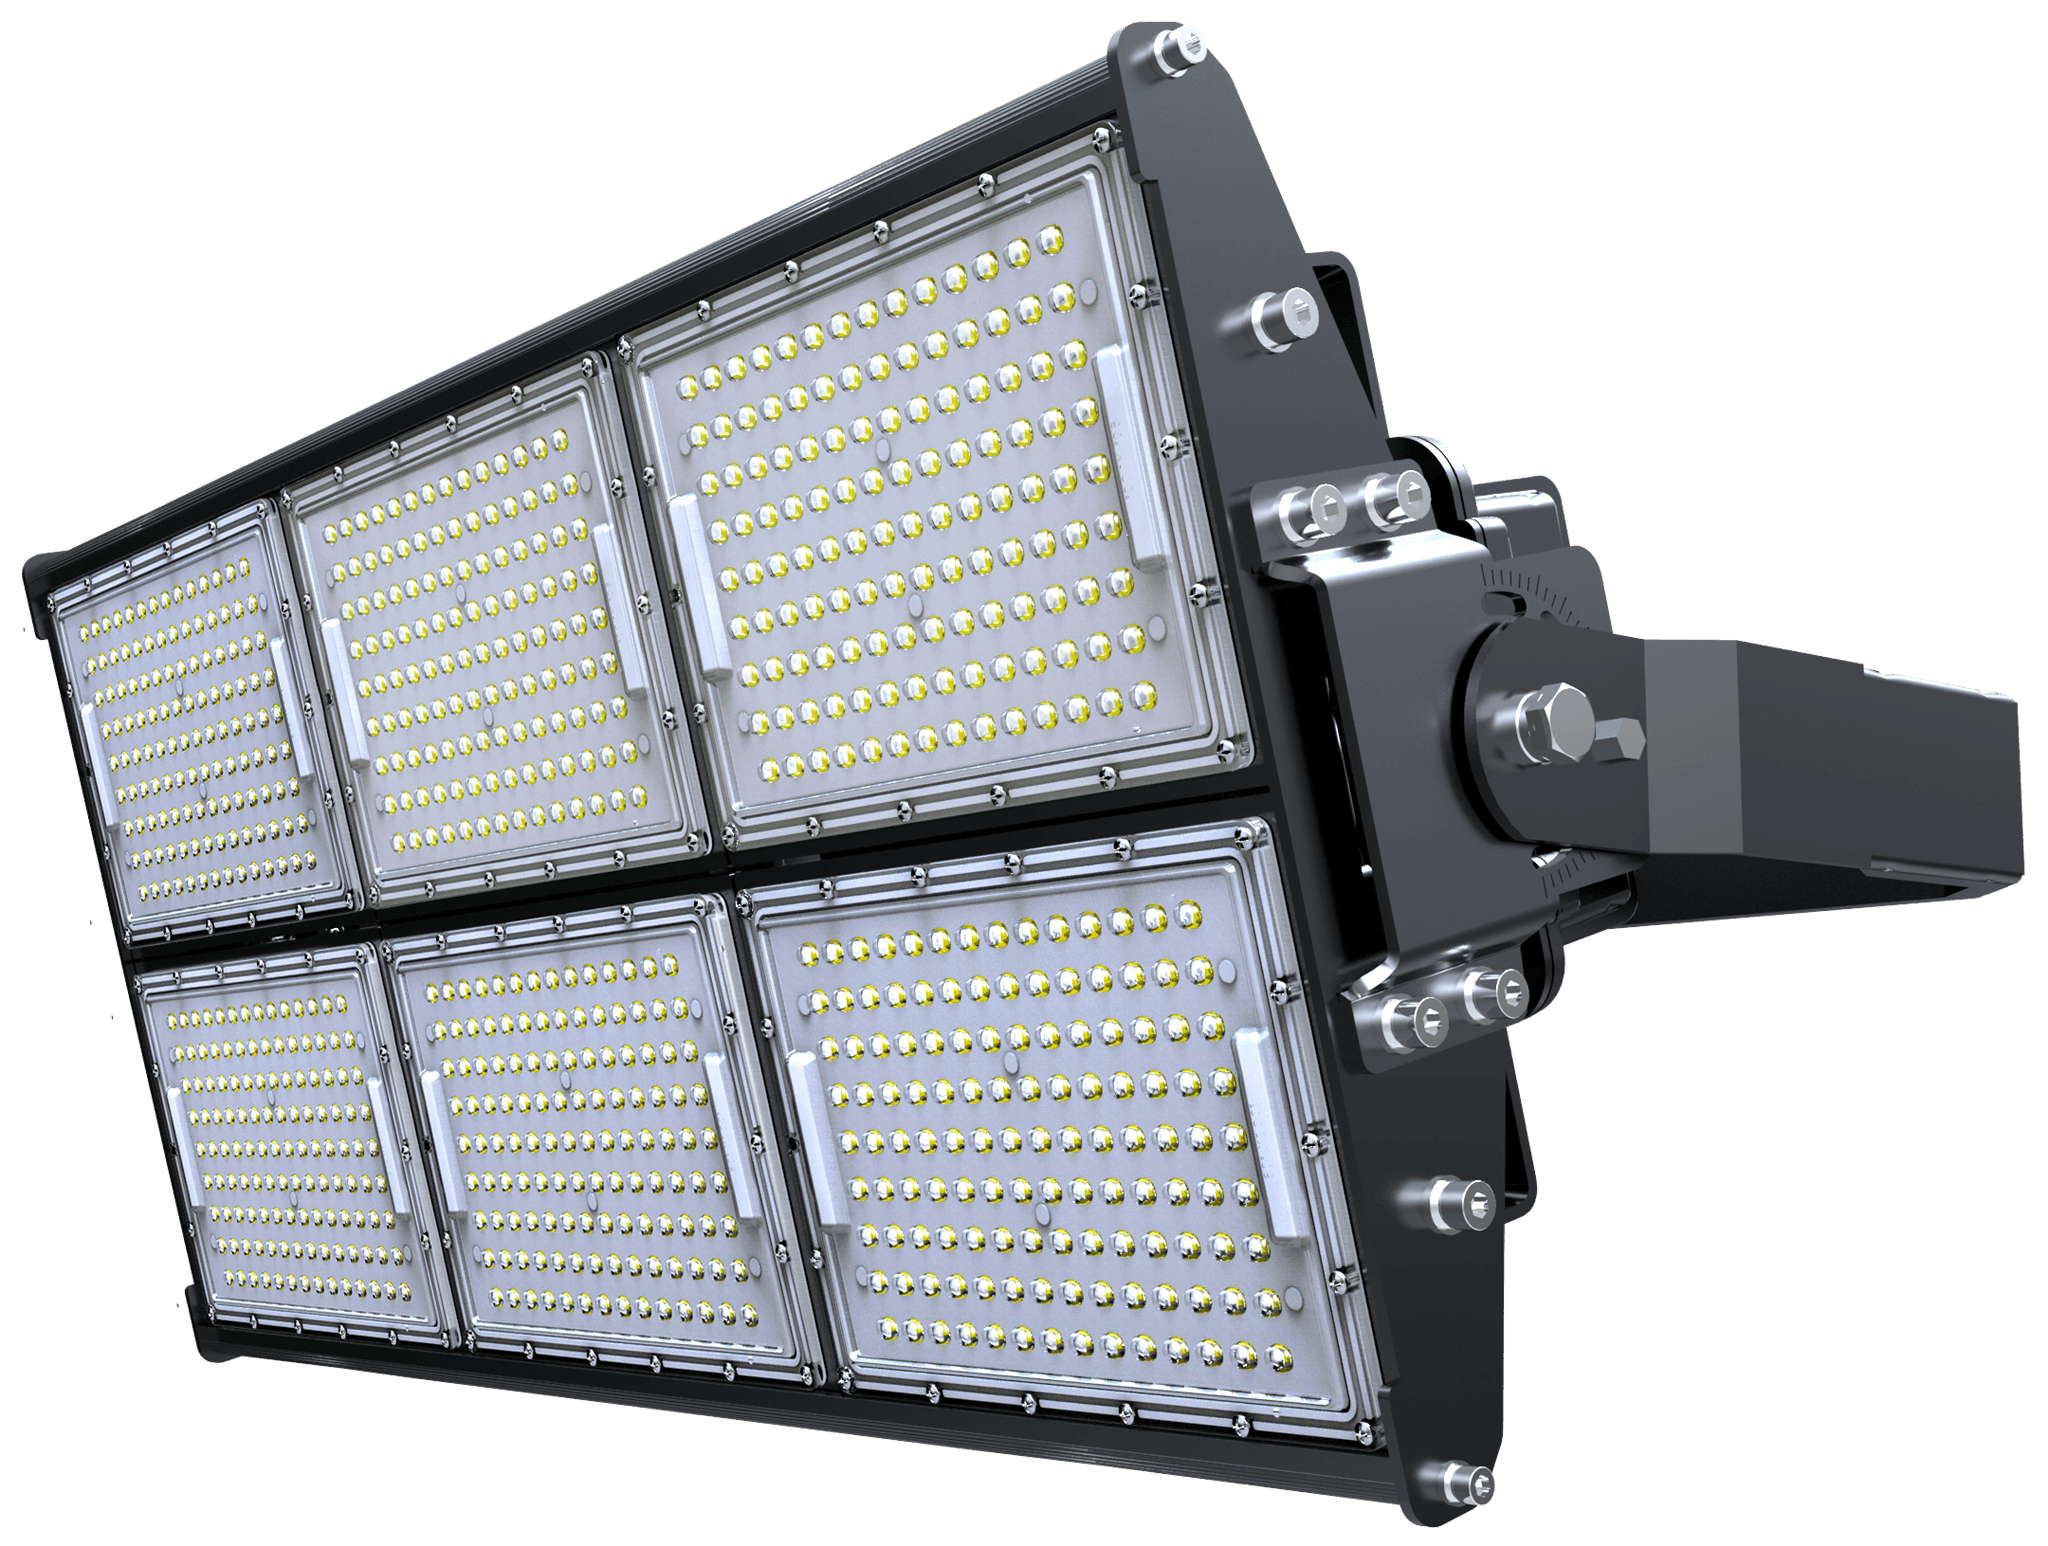 LED Stadium Light 720W, Super Bright Outdoor Flood Light, IP65 Waterproof